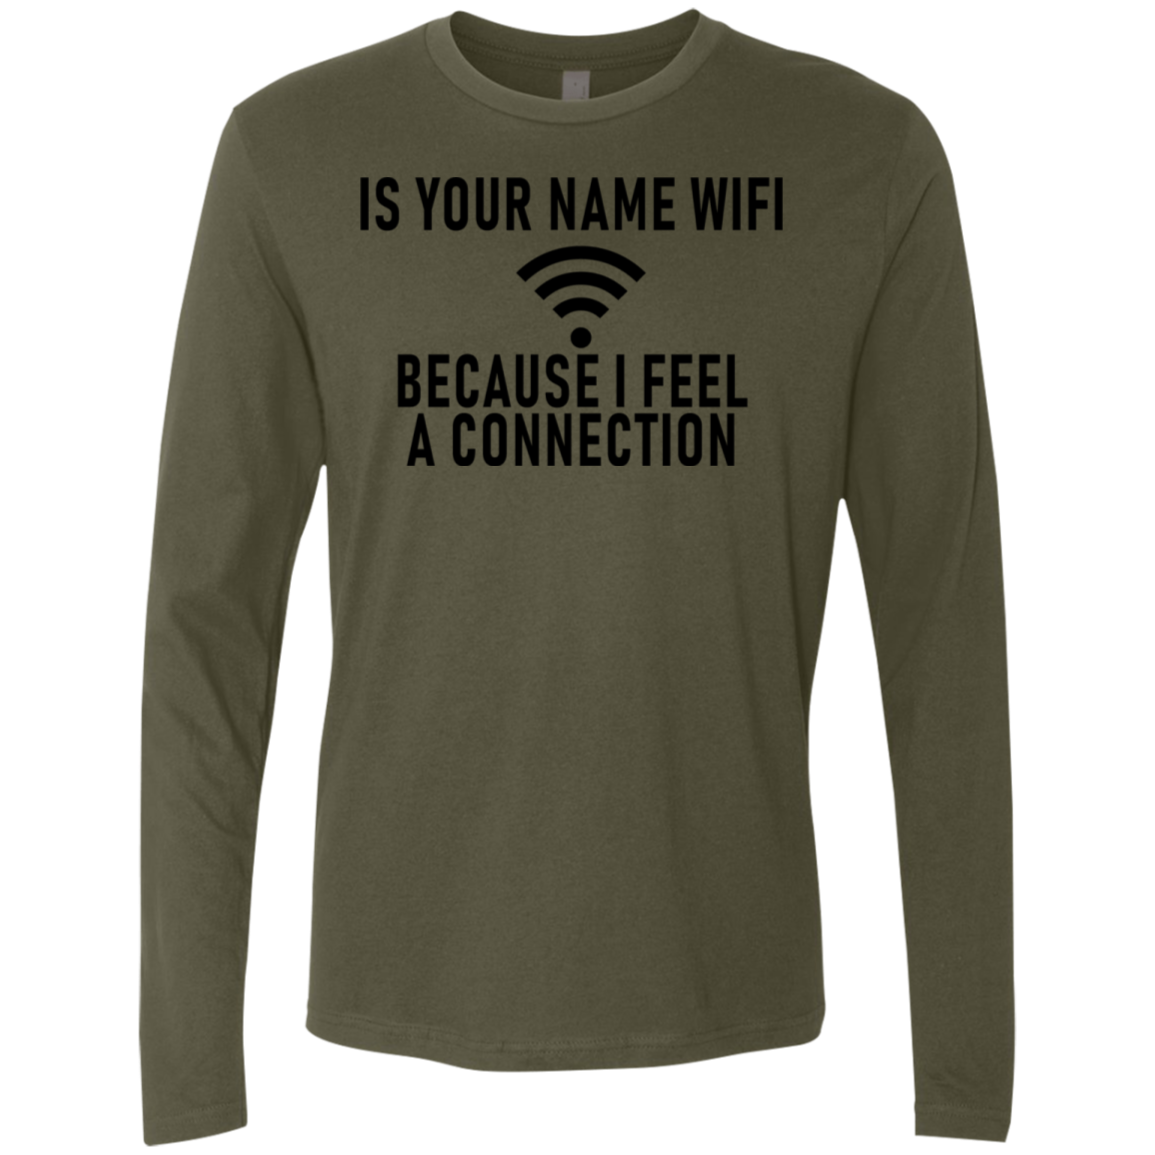 I Your Name WiFi Because I Feel A Connection Men's Long Sleeve Tee